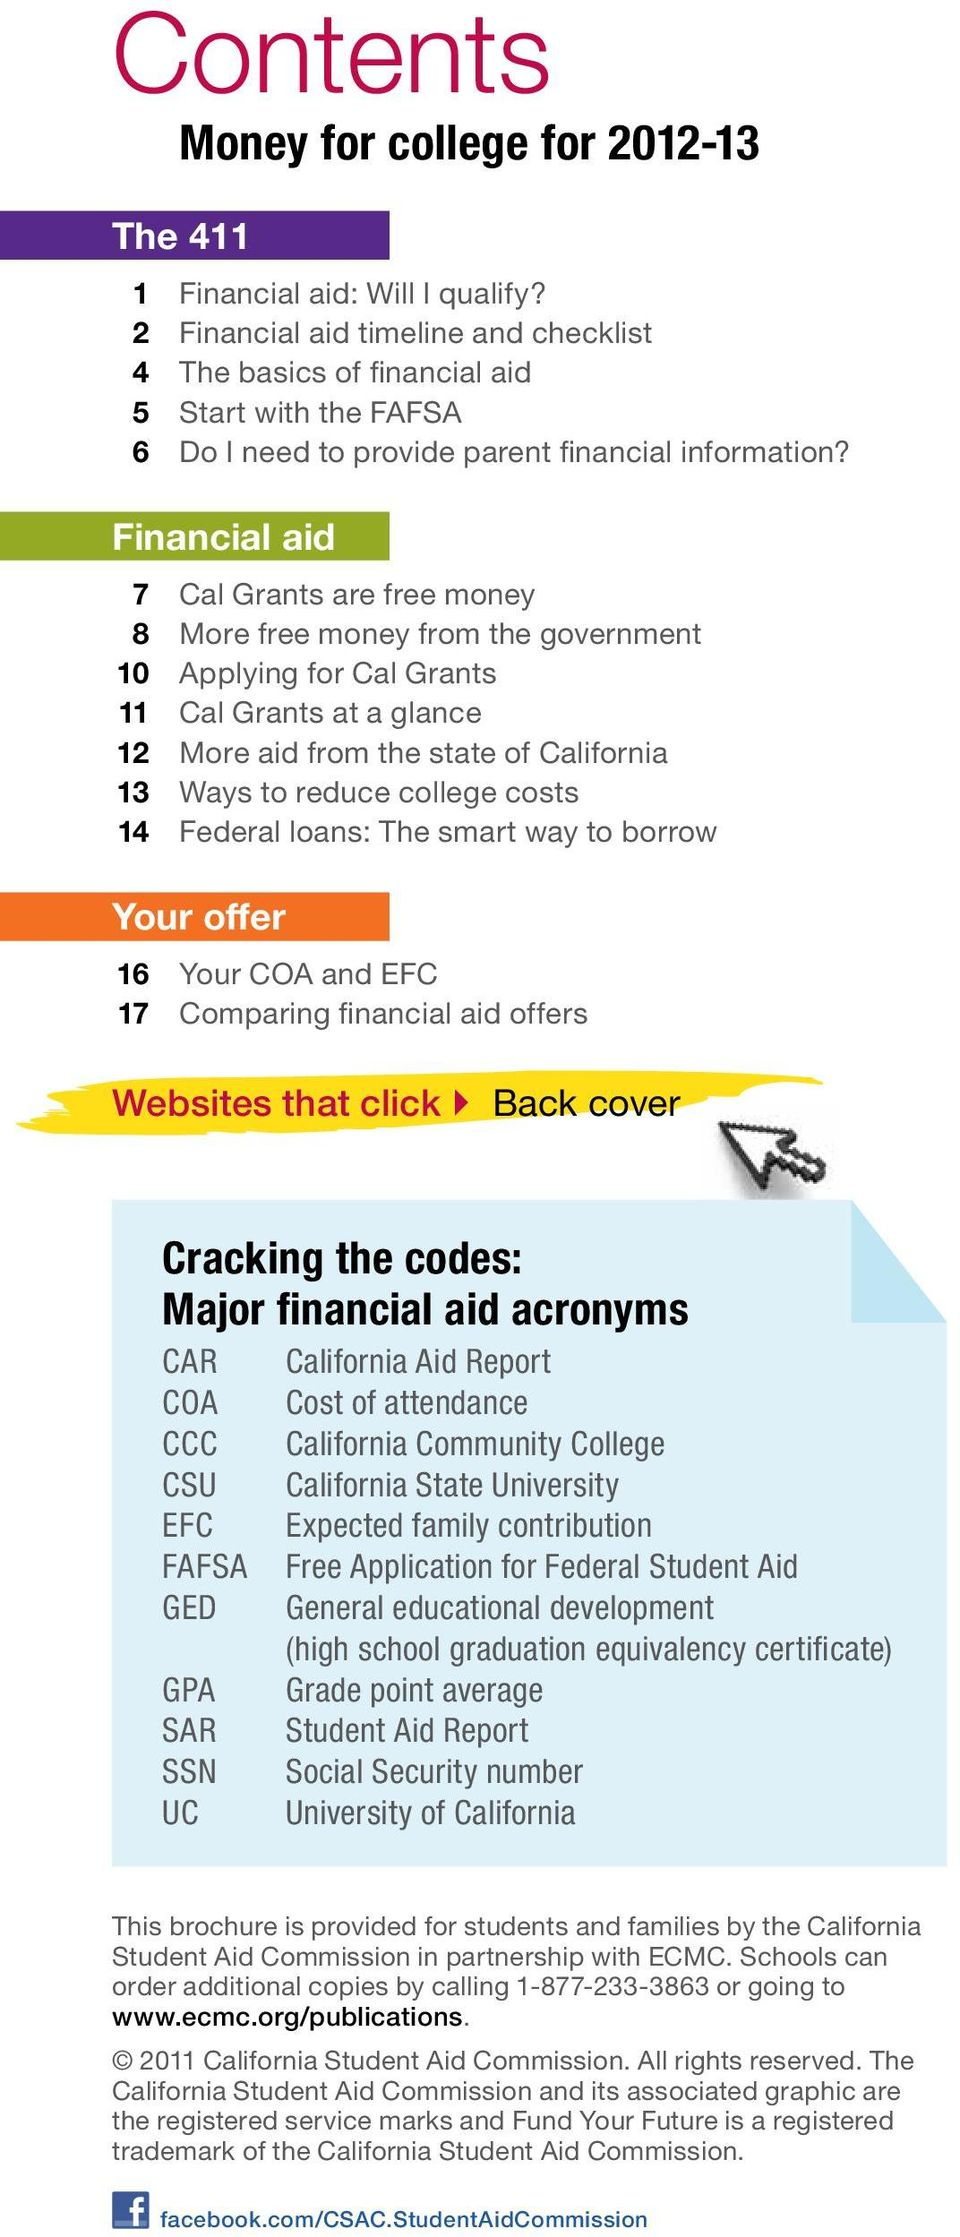 Financial aid 7 Cal Grants are free money 8 More free money from the government 10 Applying for Cal Grants 11 Cal Grants at a glance 12 More aid from the state of California 13 Ways to reduce college